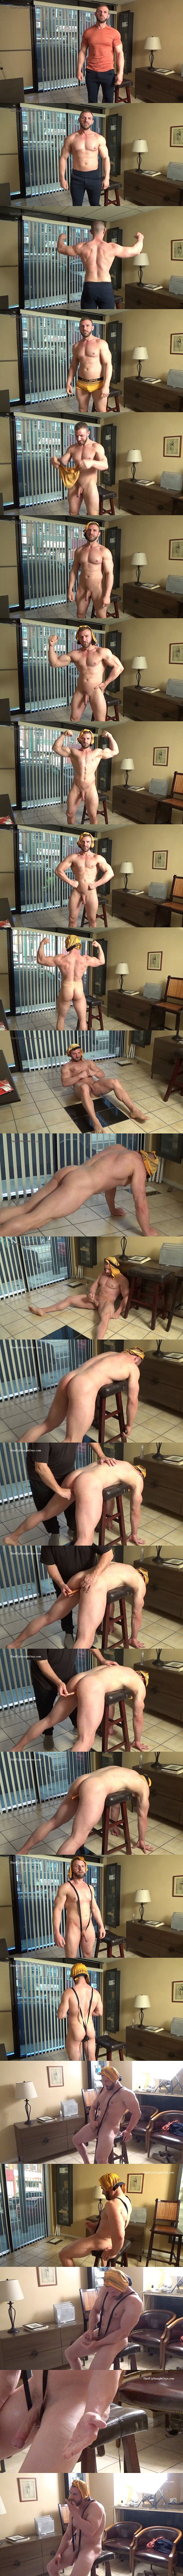 Hardupstraightguys - macho straight hunk Anthony gets his virgin ass fingered and dildo-fucked before he jerks off and tastes his cum in front of the storefront window 02